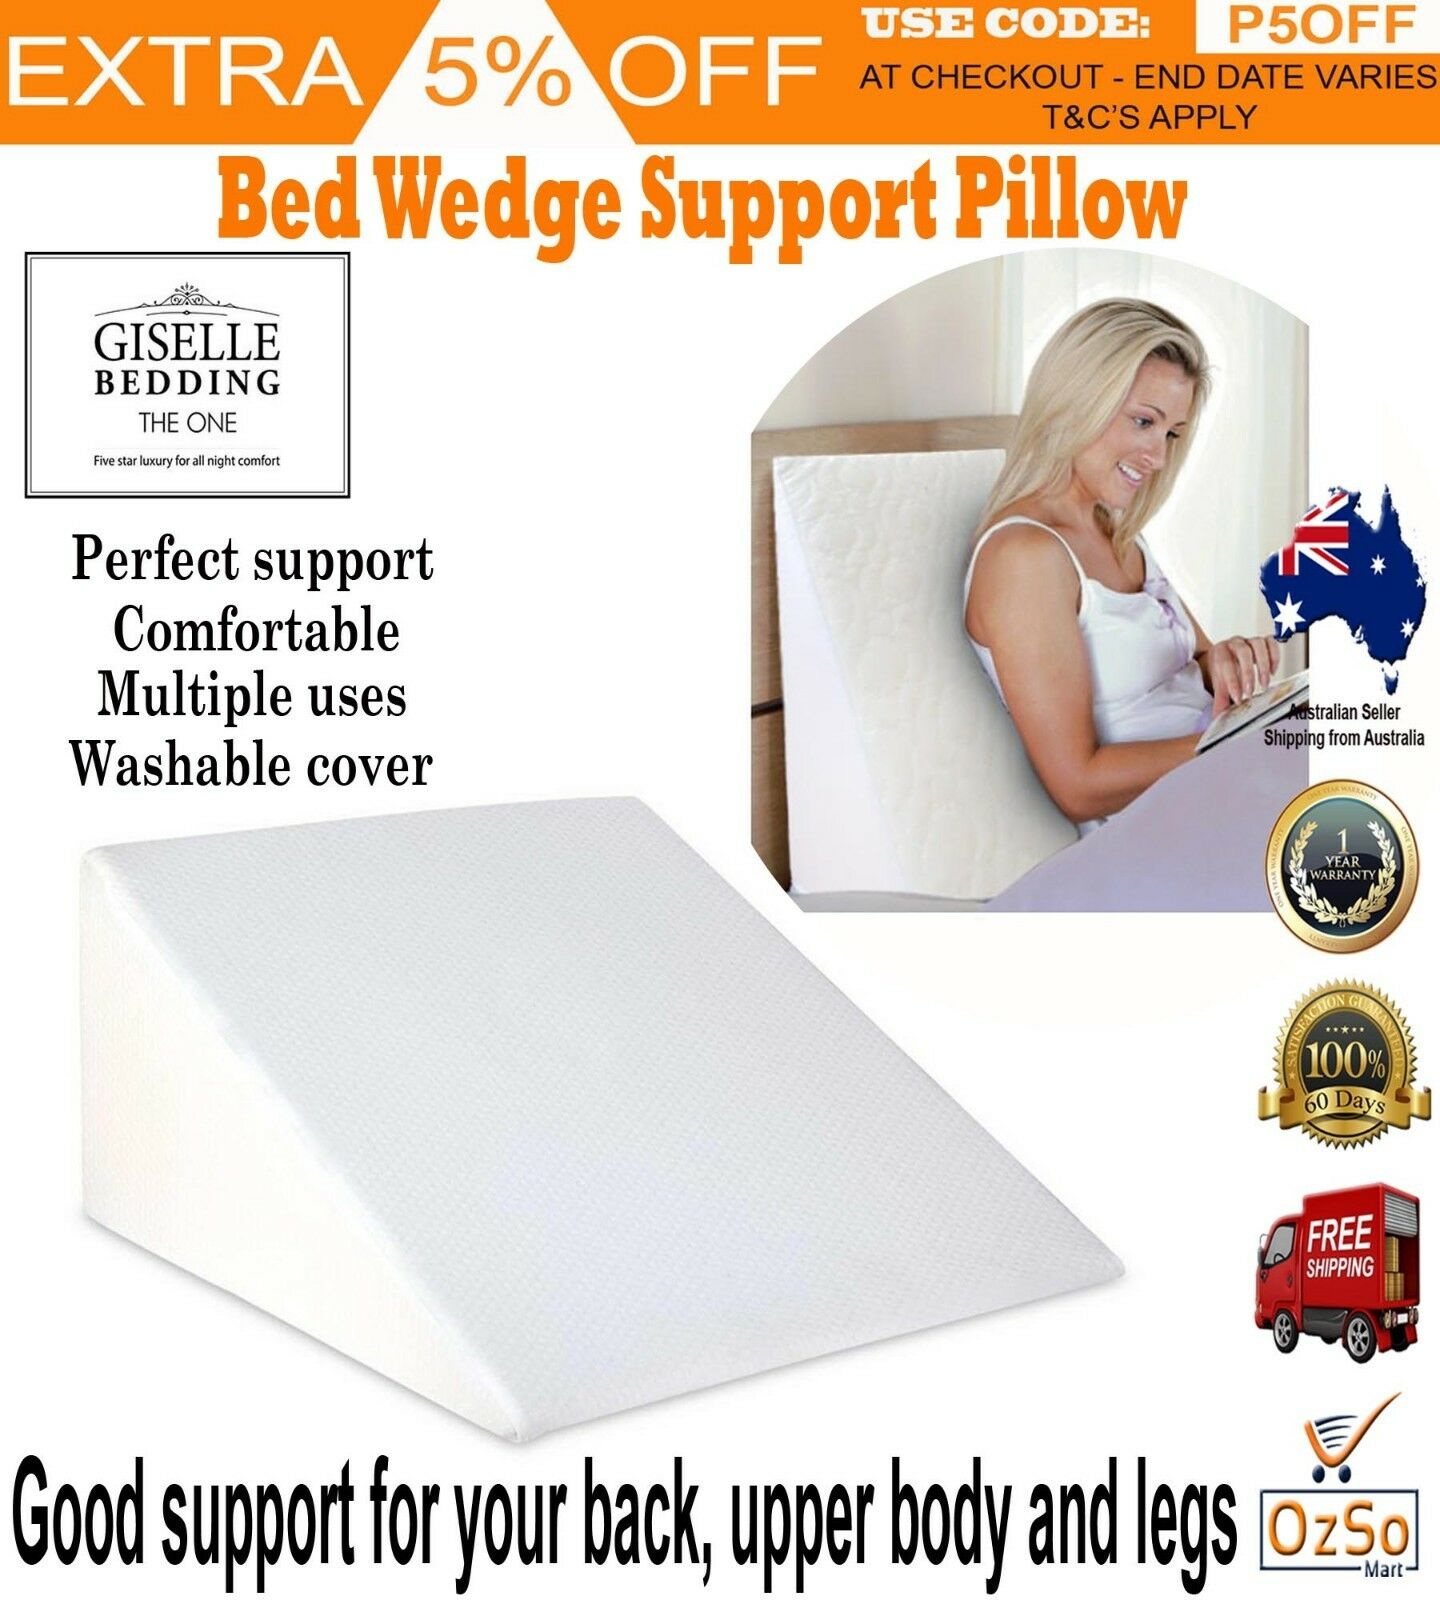 Wedge Support Bed Pillow Ebay